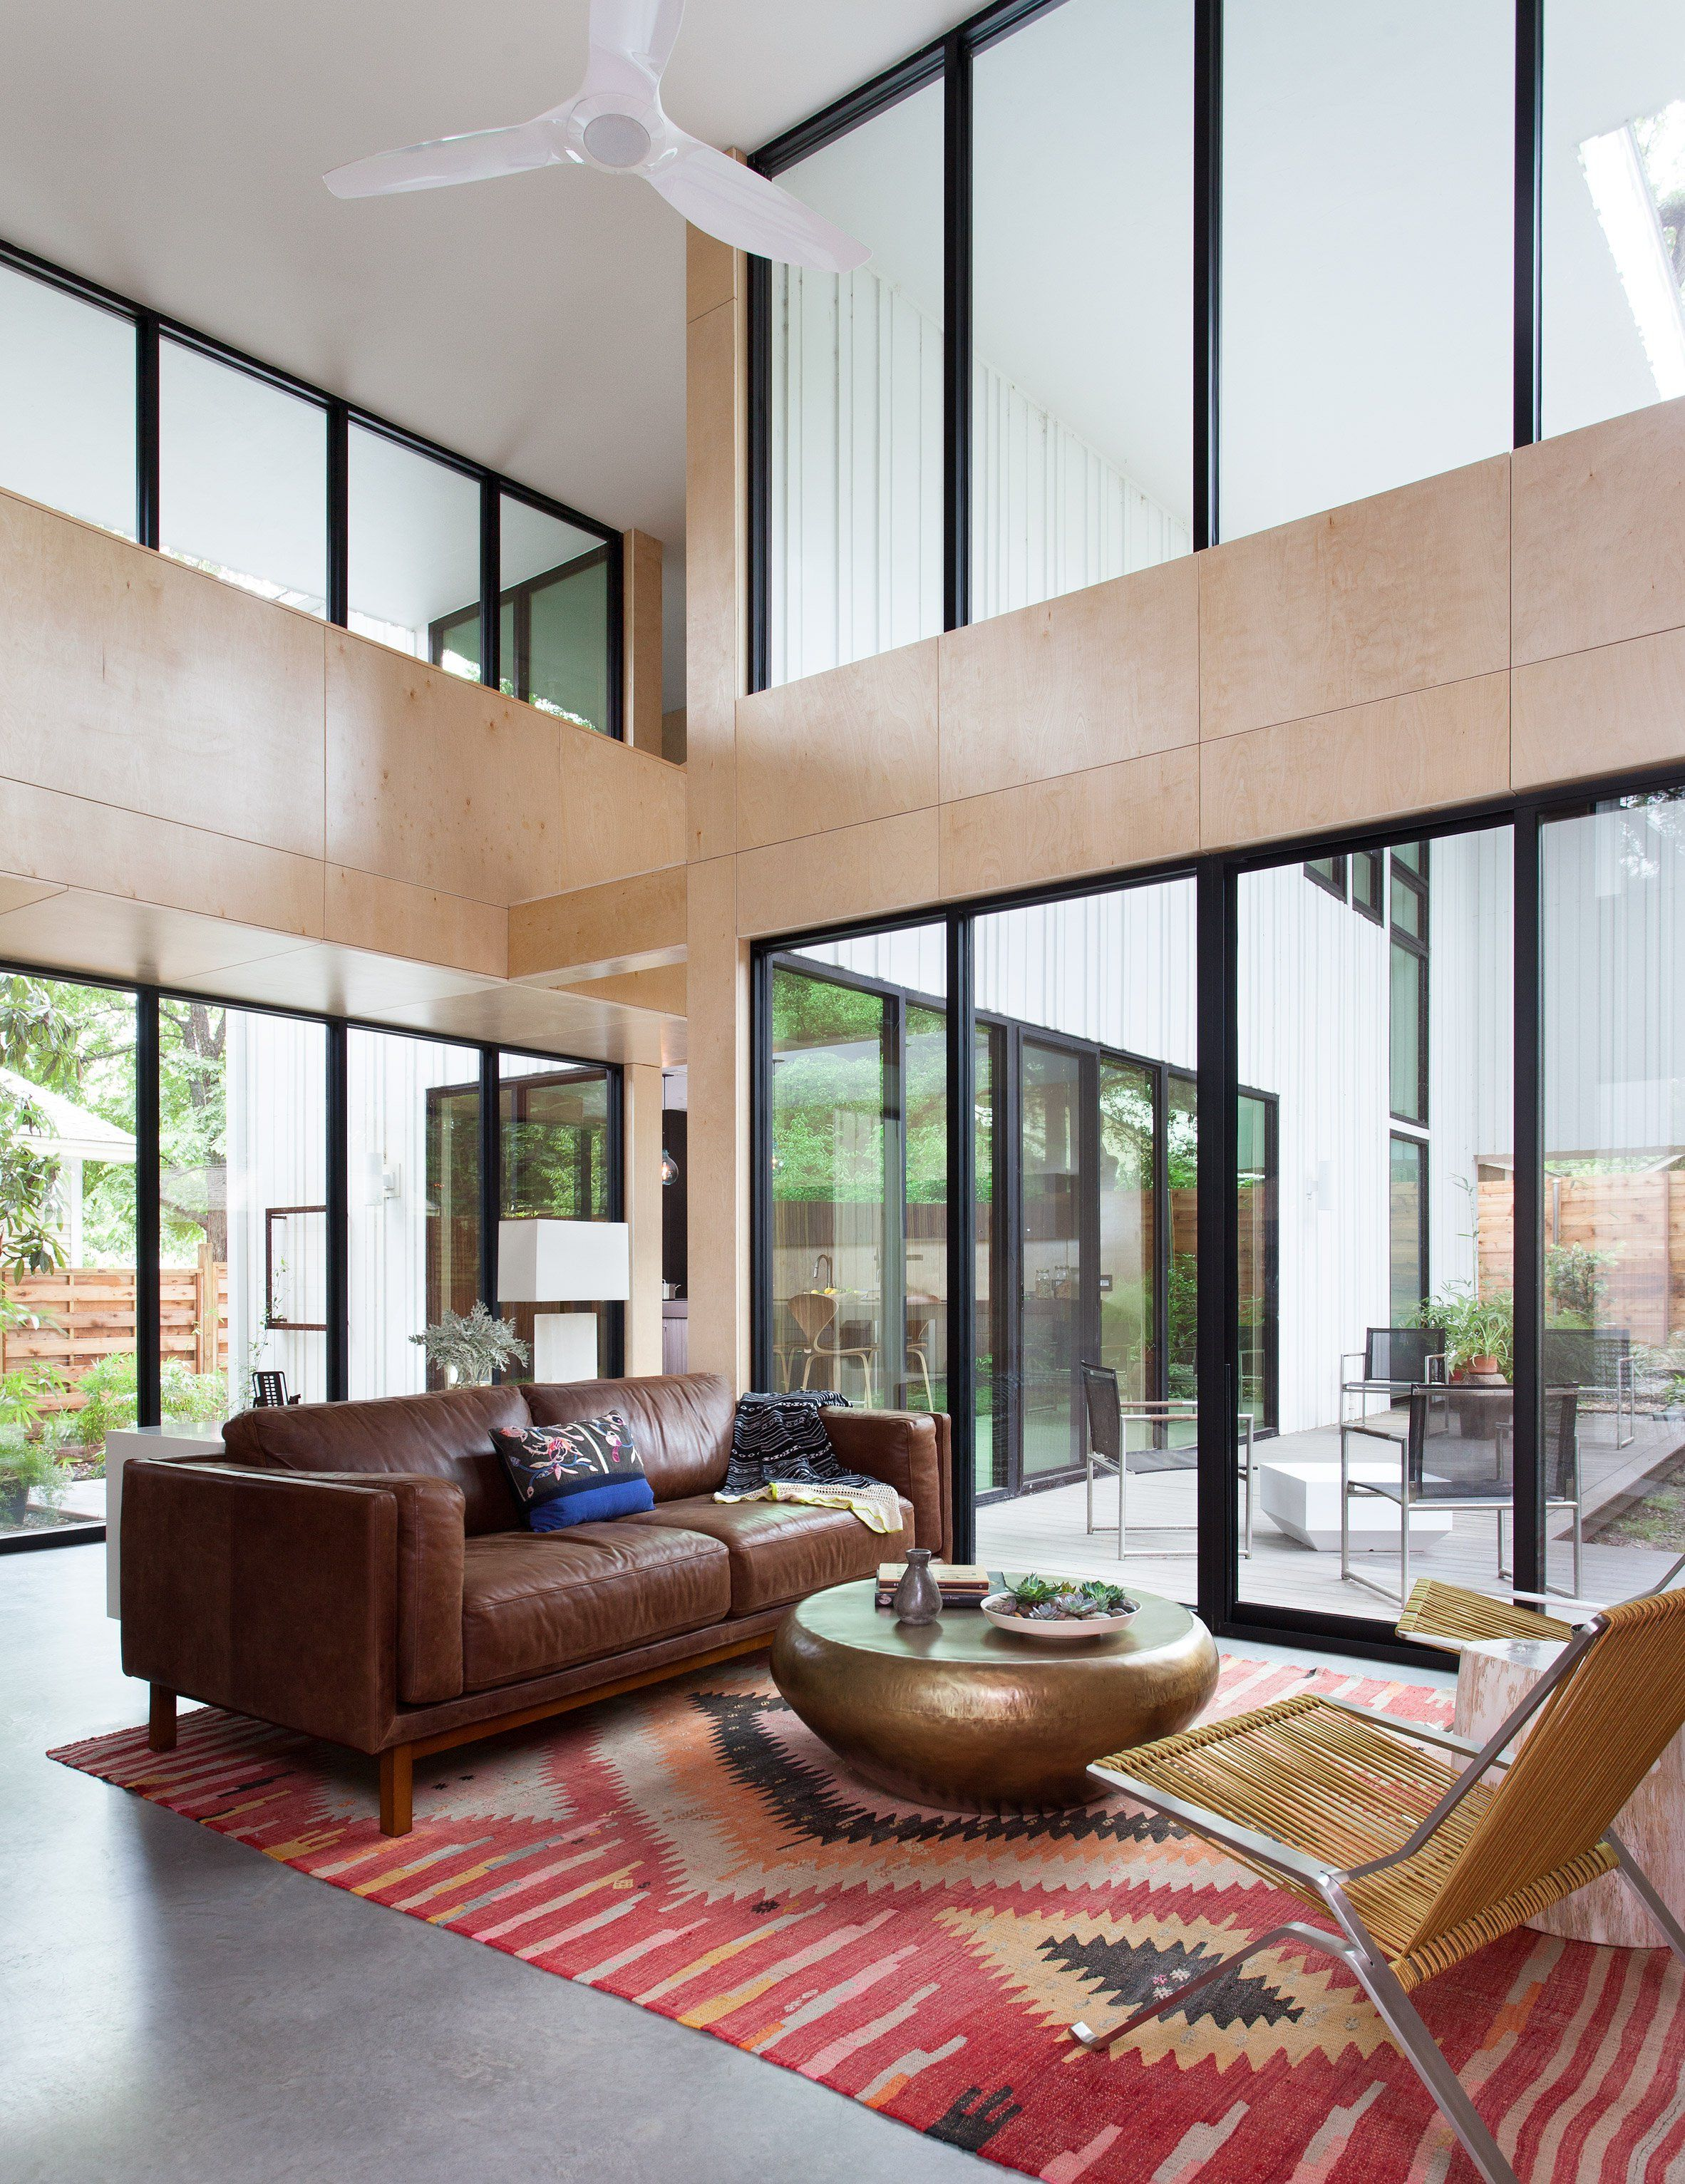 Us firm webber studio has covered the exterior of this - Interior design firms austin tx ...